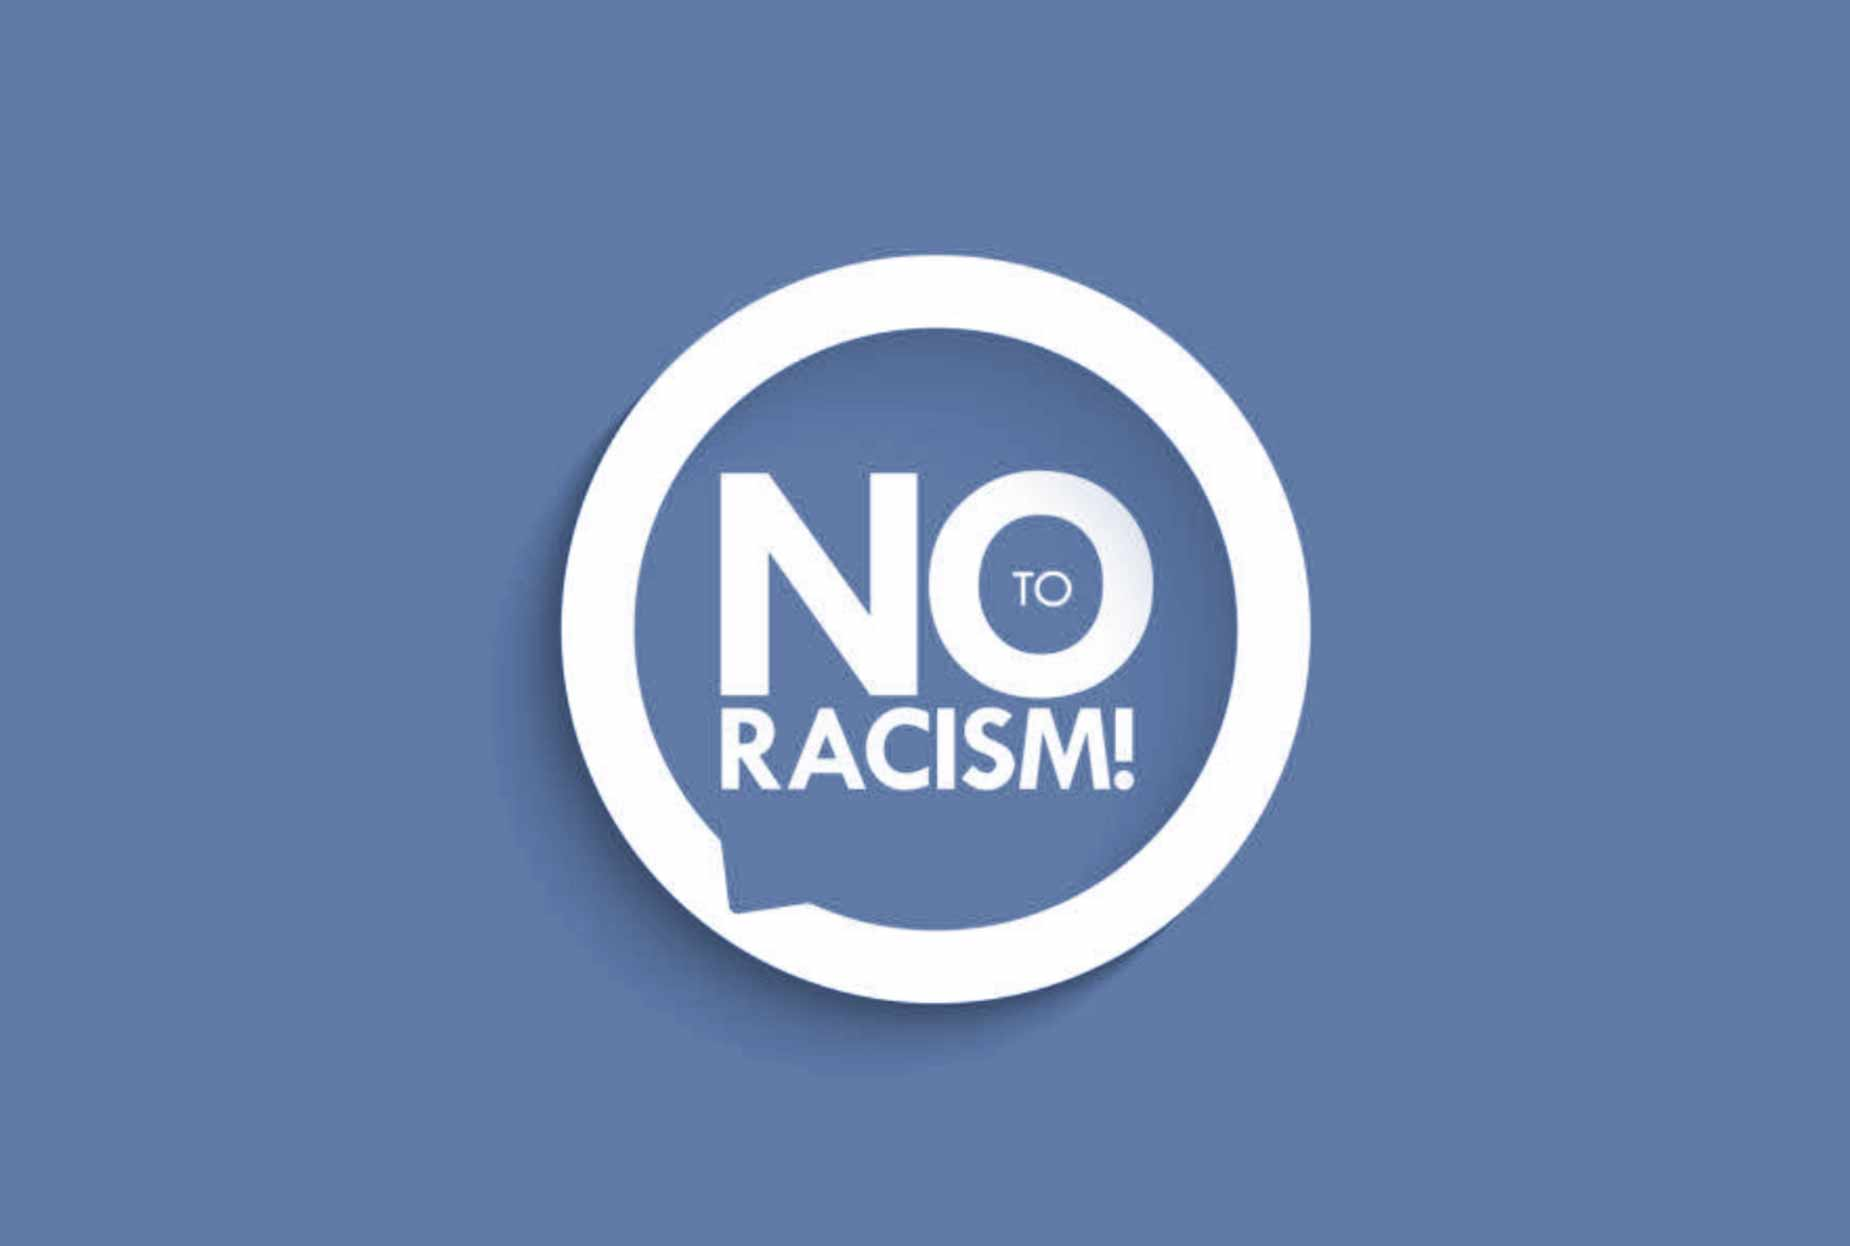 Anti-racism: Statement from Avanti Schools Trust